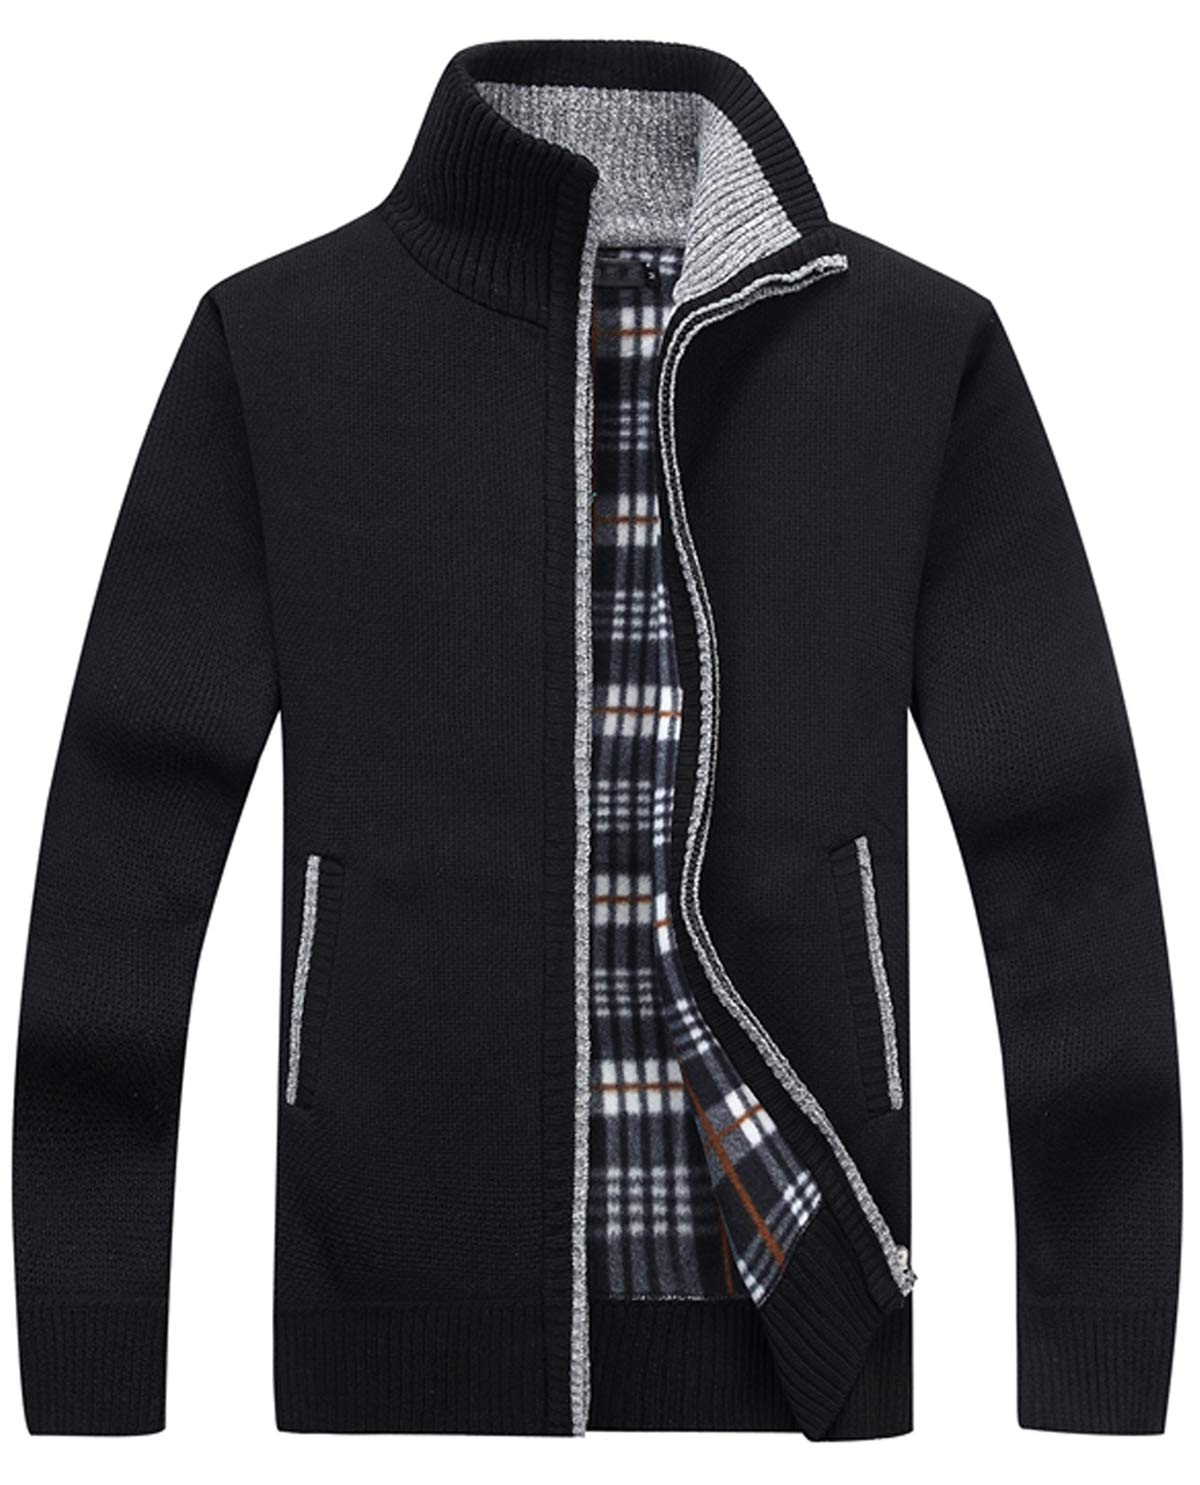 HOW'ON Men's Zip Knitted Cardigan Sweater Black XL